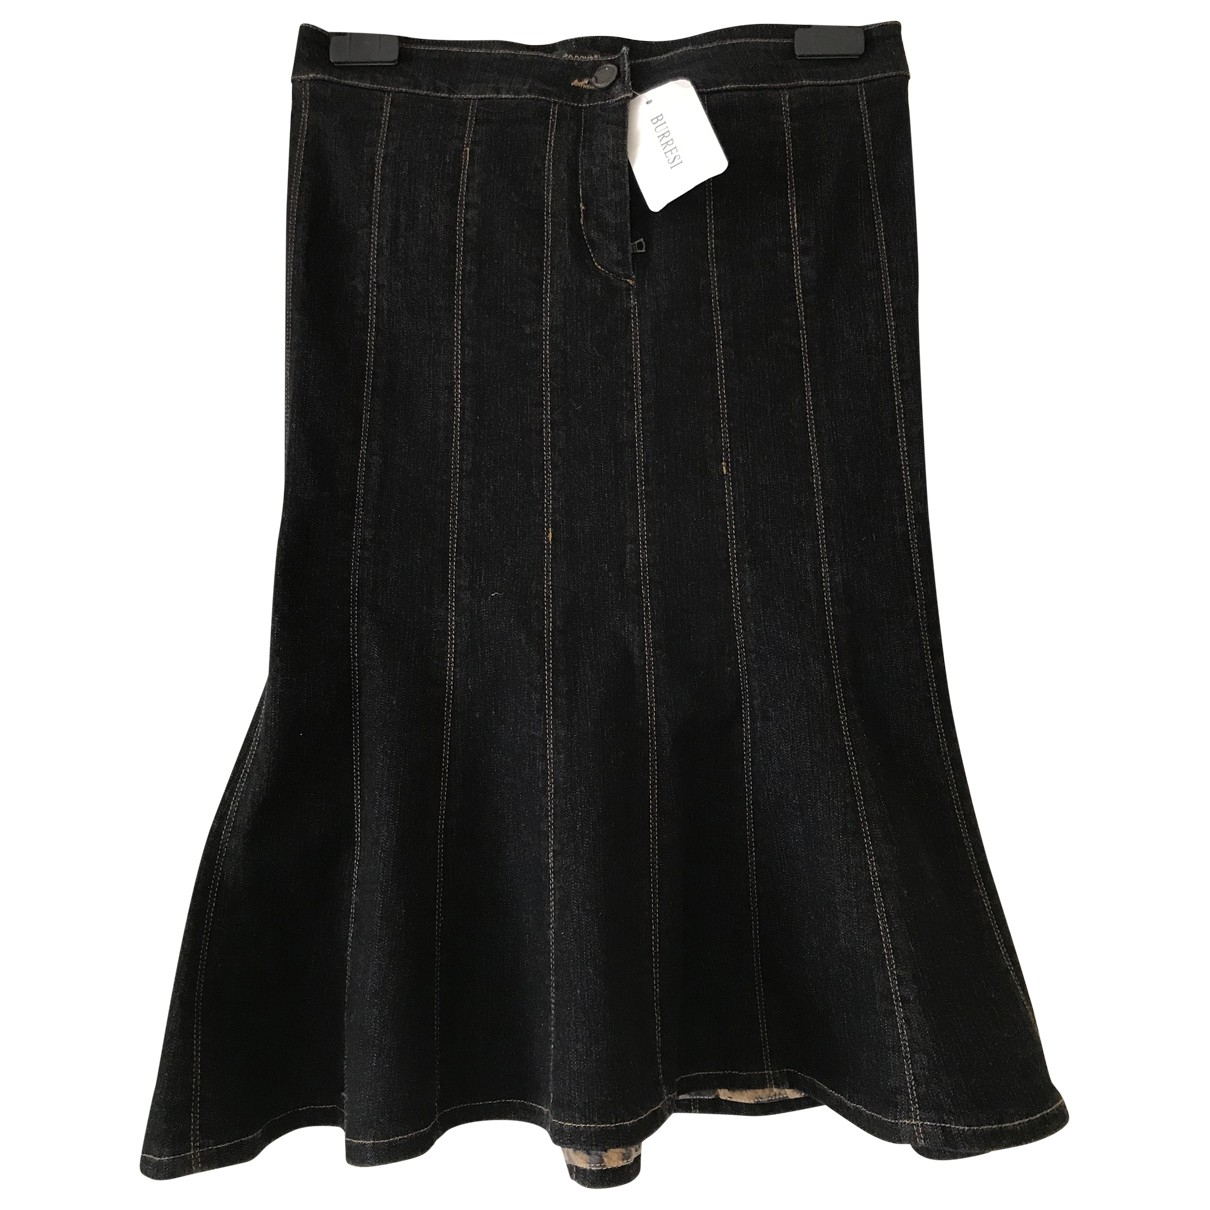 Roberto Cavalli \N Black Denim - Jeans skirt for Women 36 FR